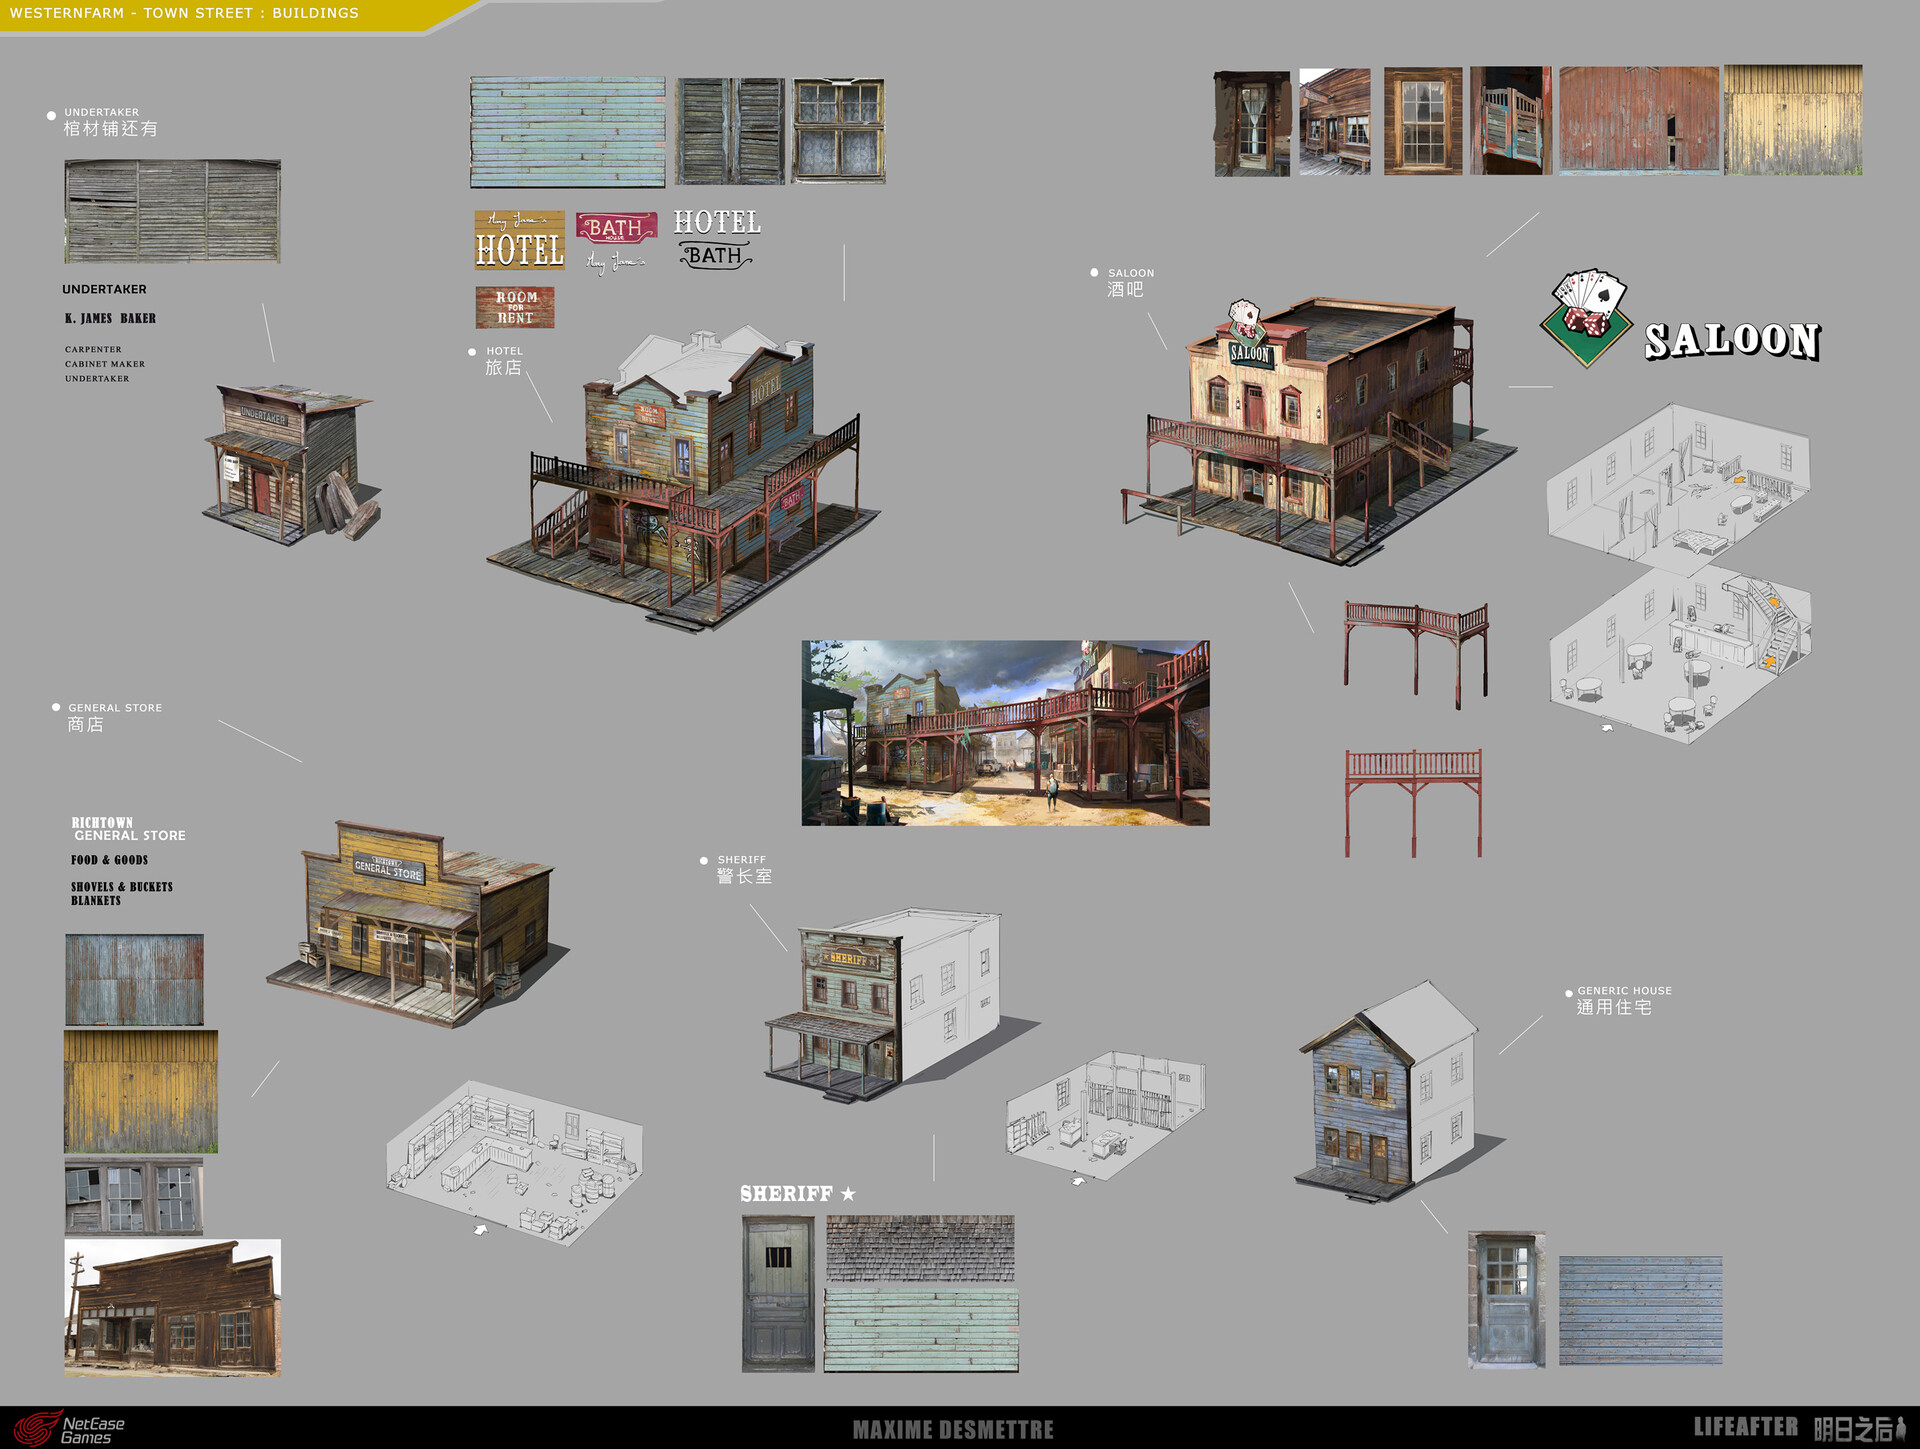 Life After - Western Town Street - Props Details